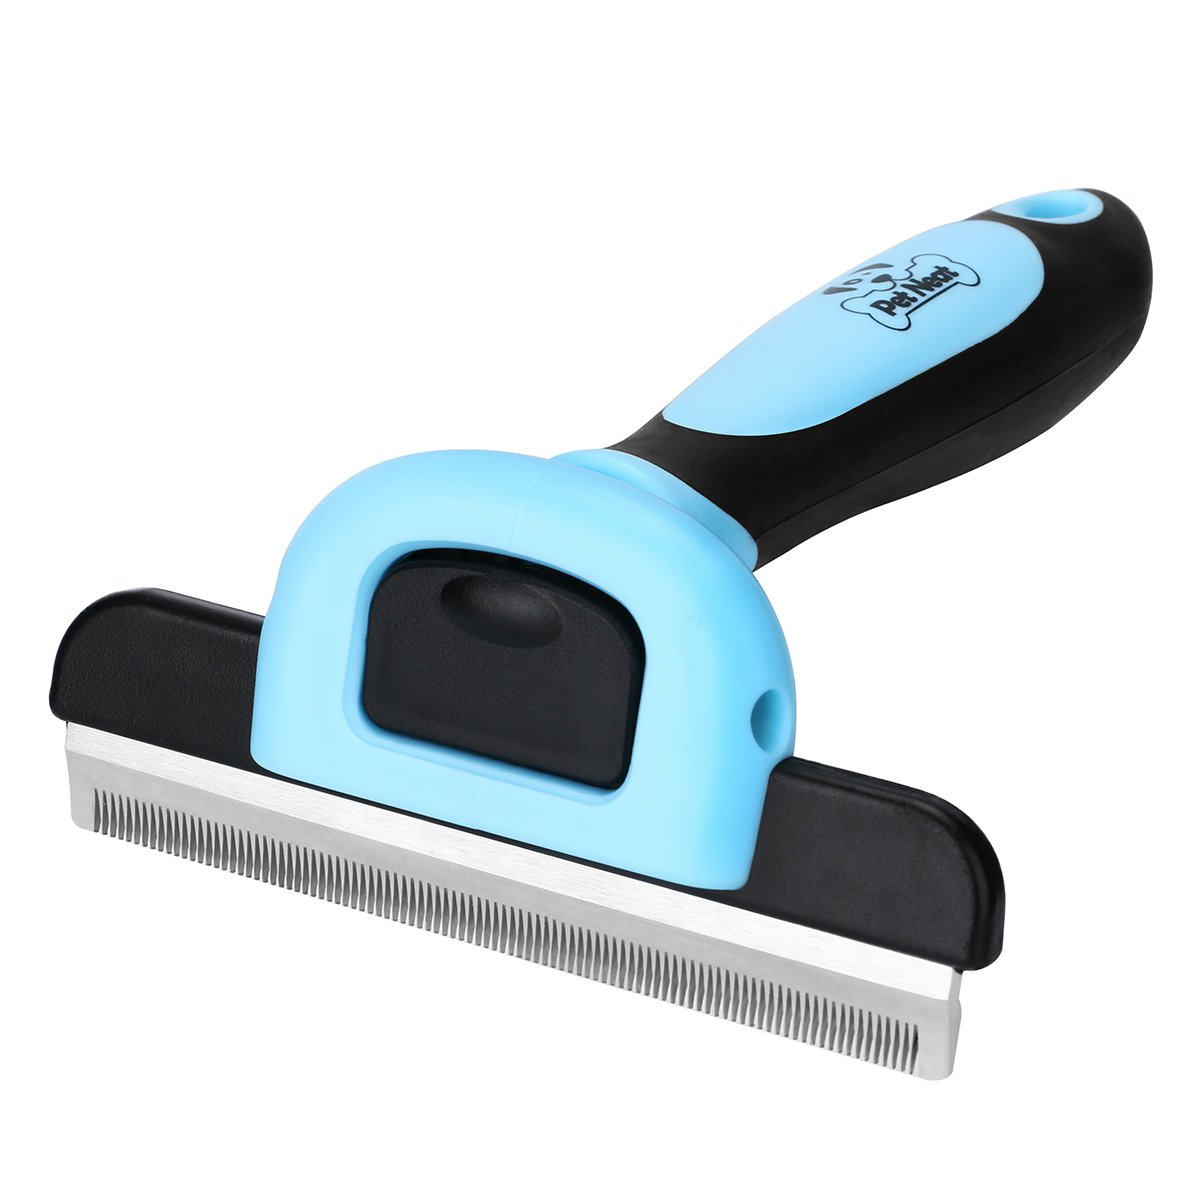 Pet Grooming Brush Effectively Reduces Shedding up to 95% Professional Deshedding Tool Dogs Cats